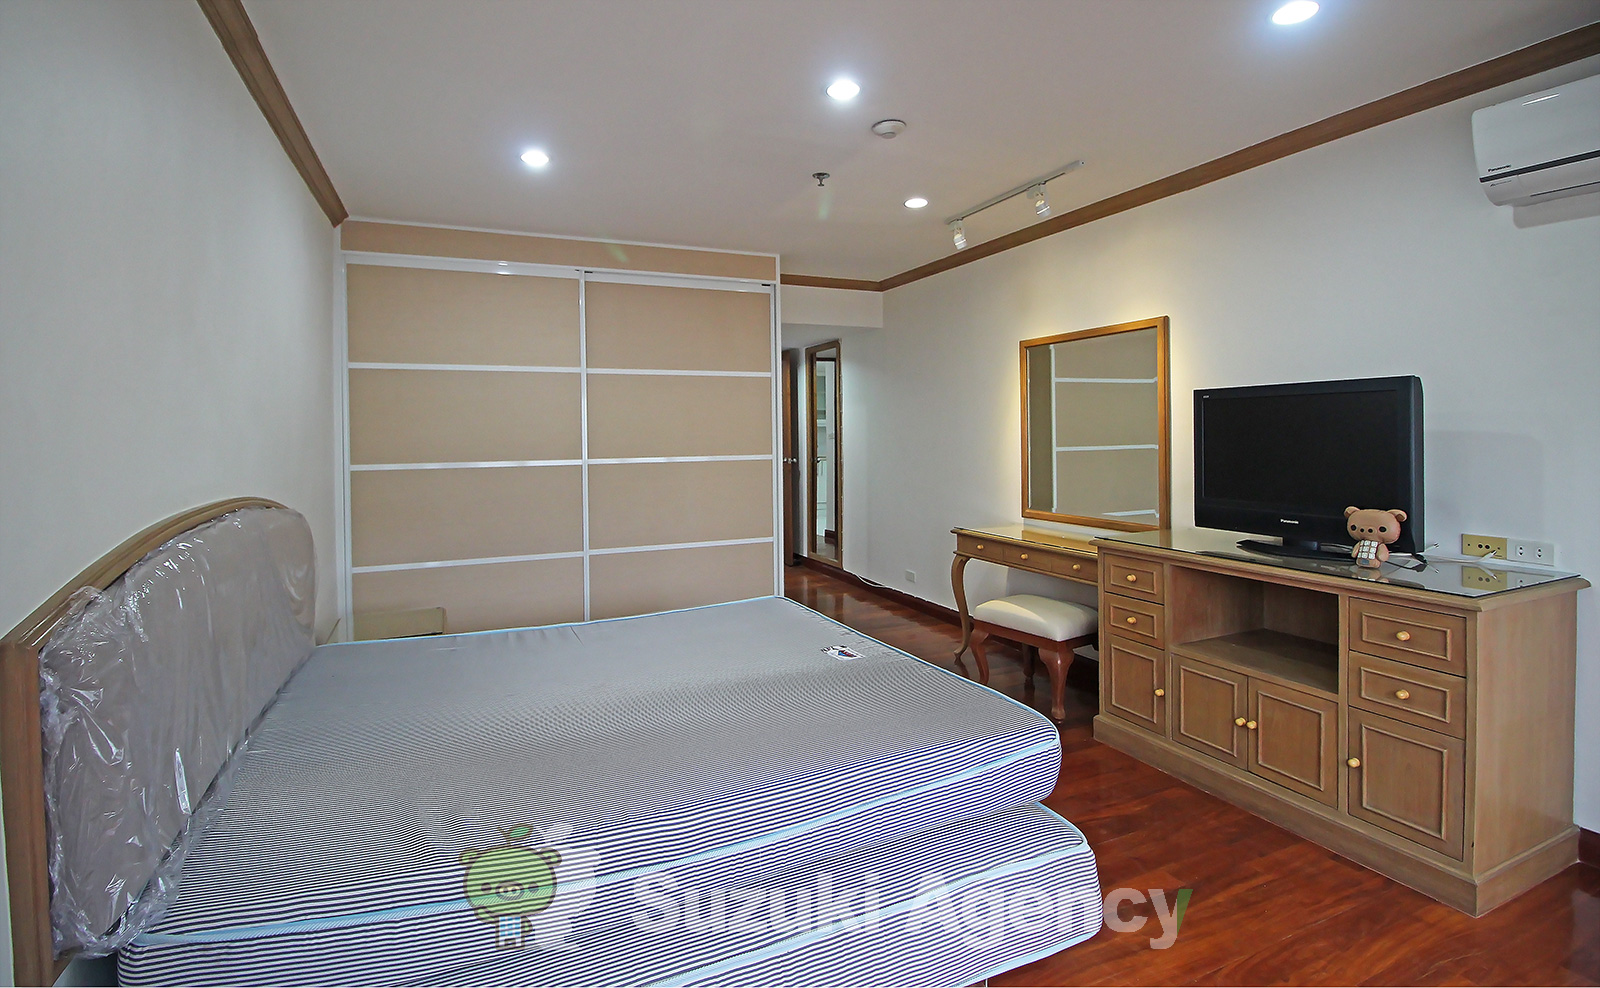 Baan Suanpetch:2Bed Room Photos No.8